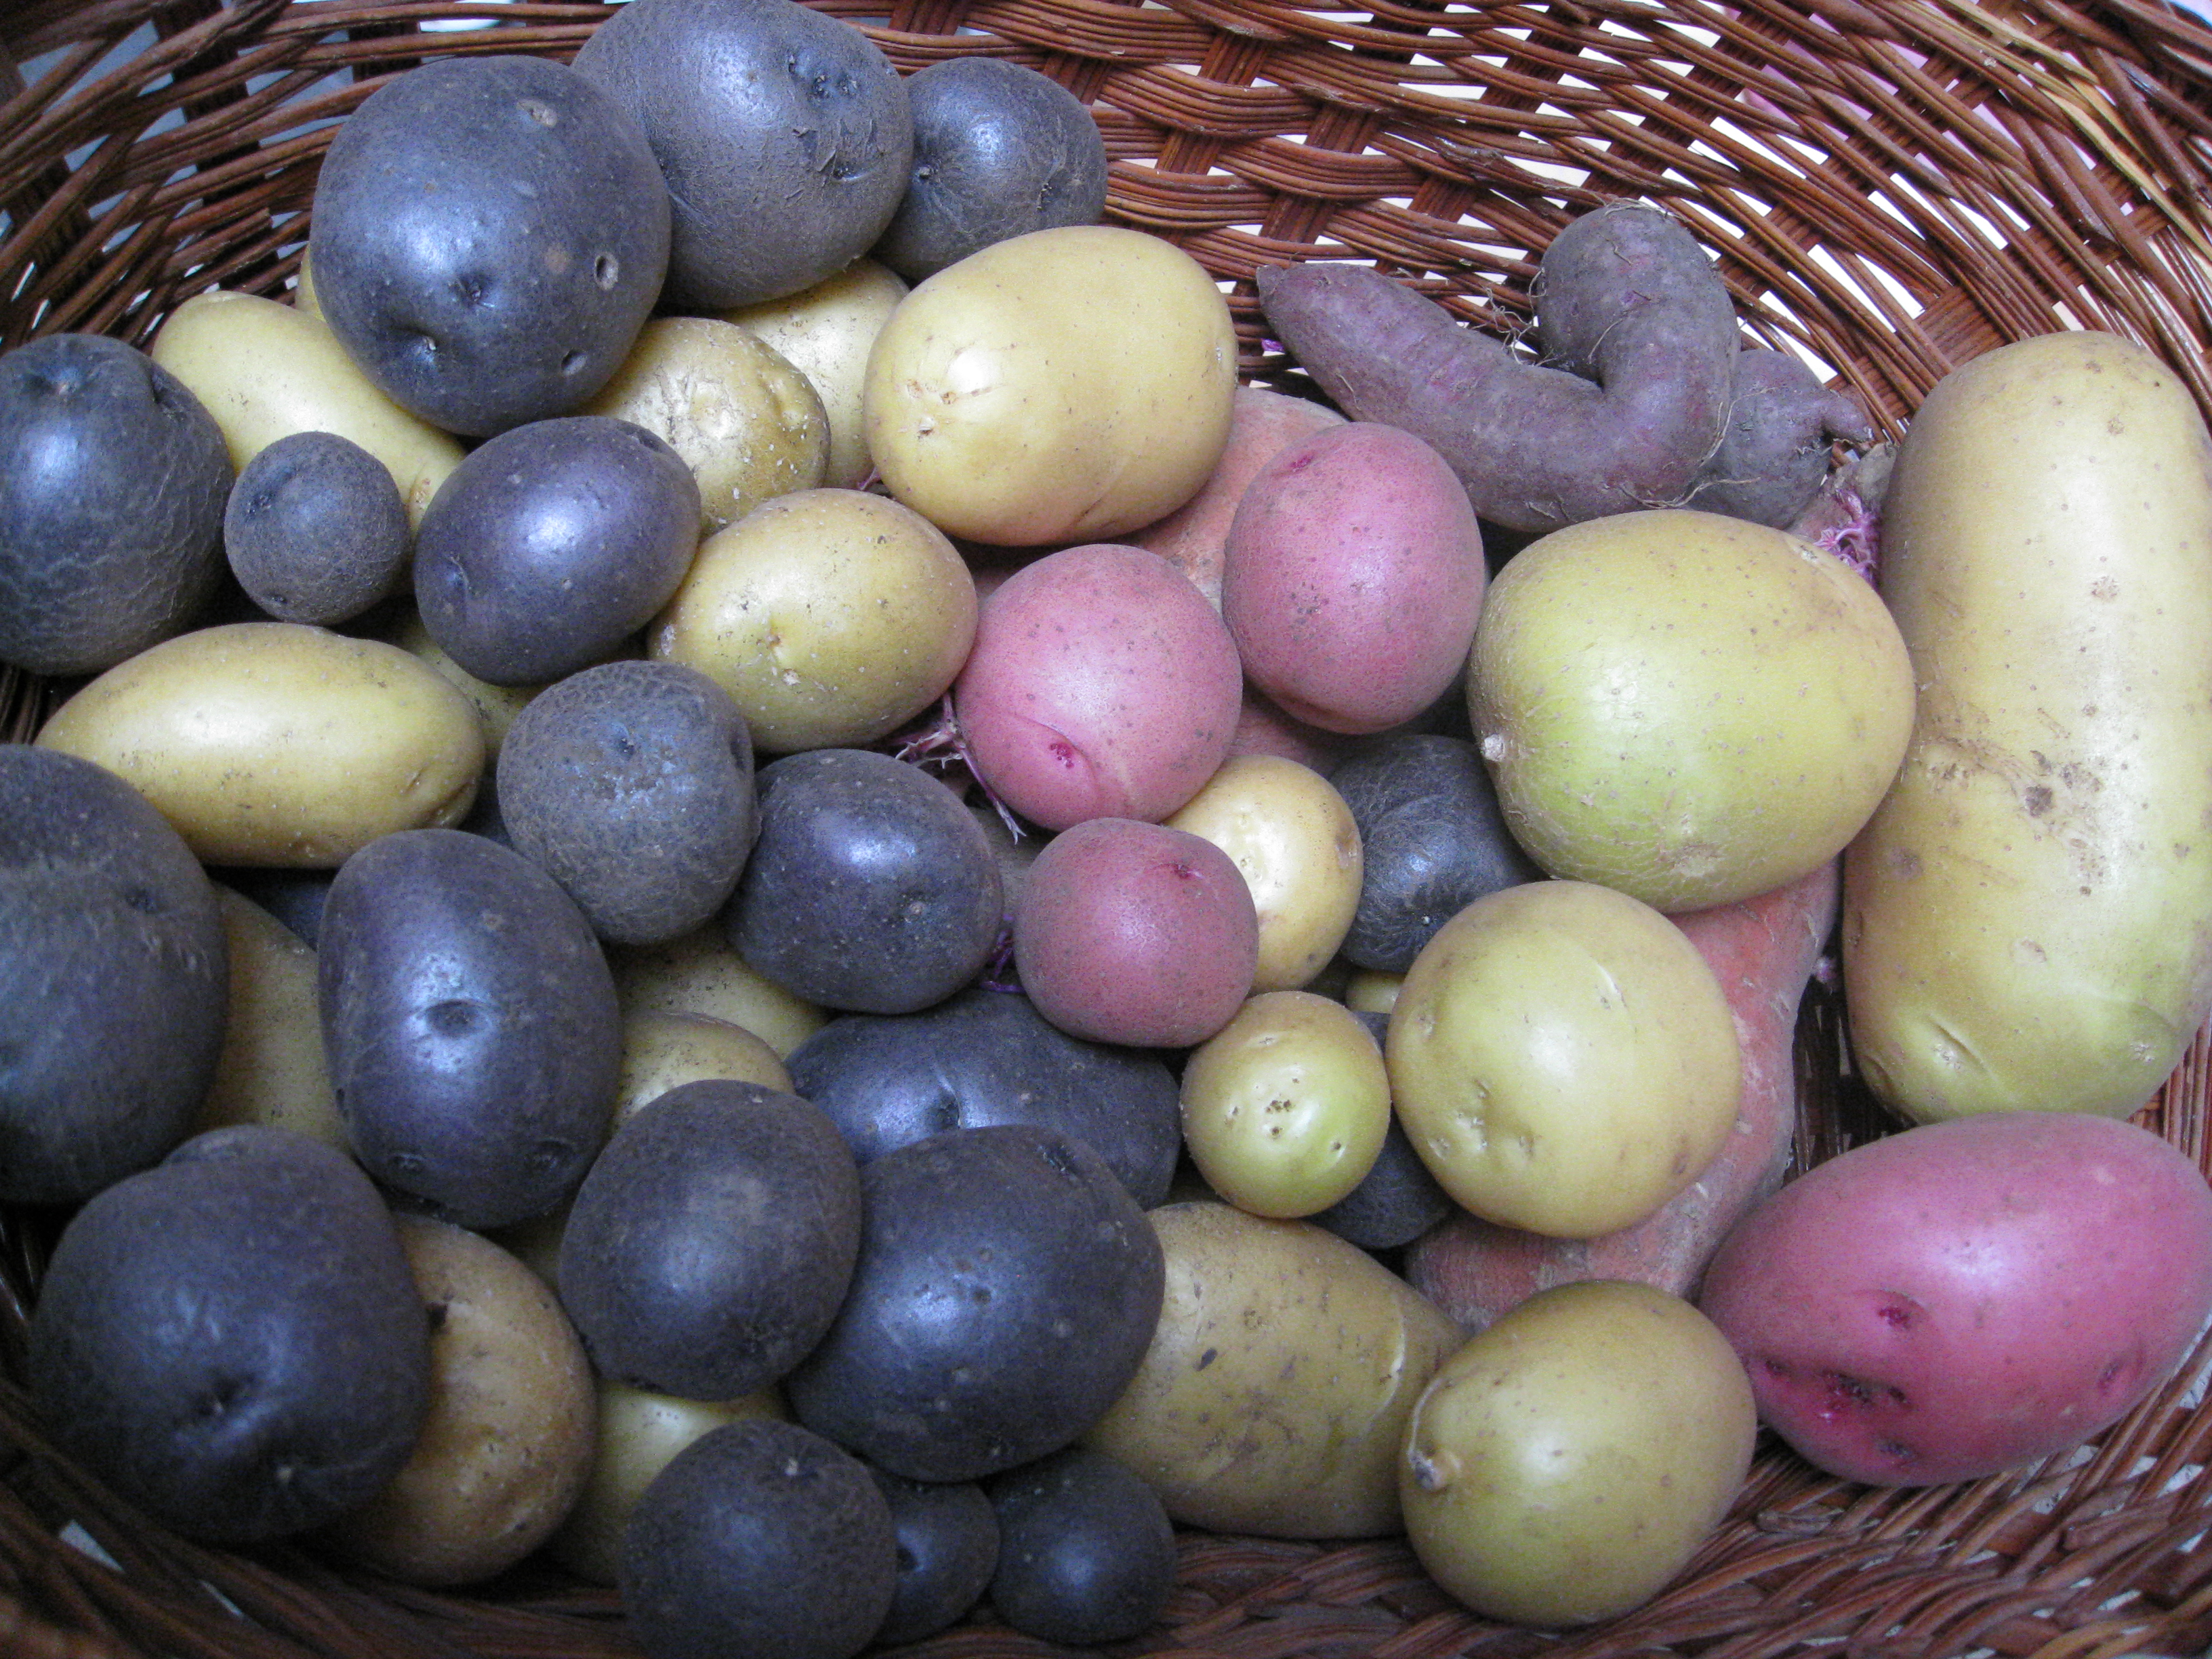 All-blue, russet and red potatoes are jewels from the garden.